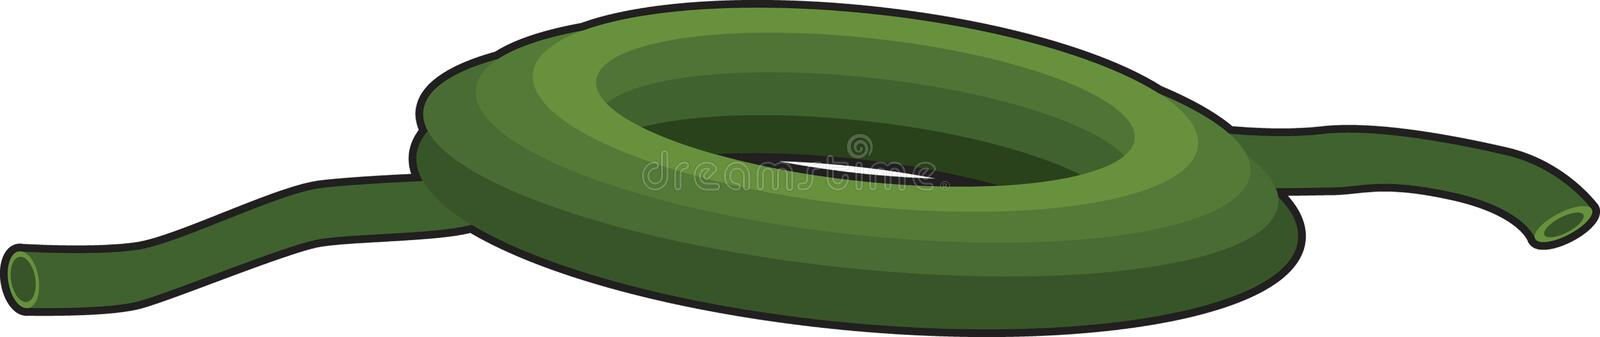 Download Tubing stock vector. Illustration of illustration, colorful - 10540305